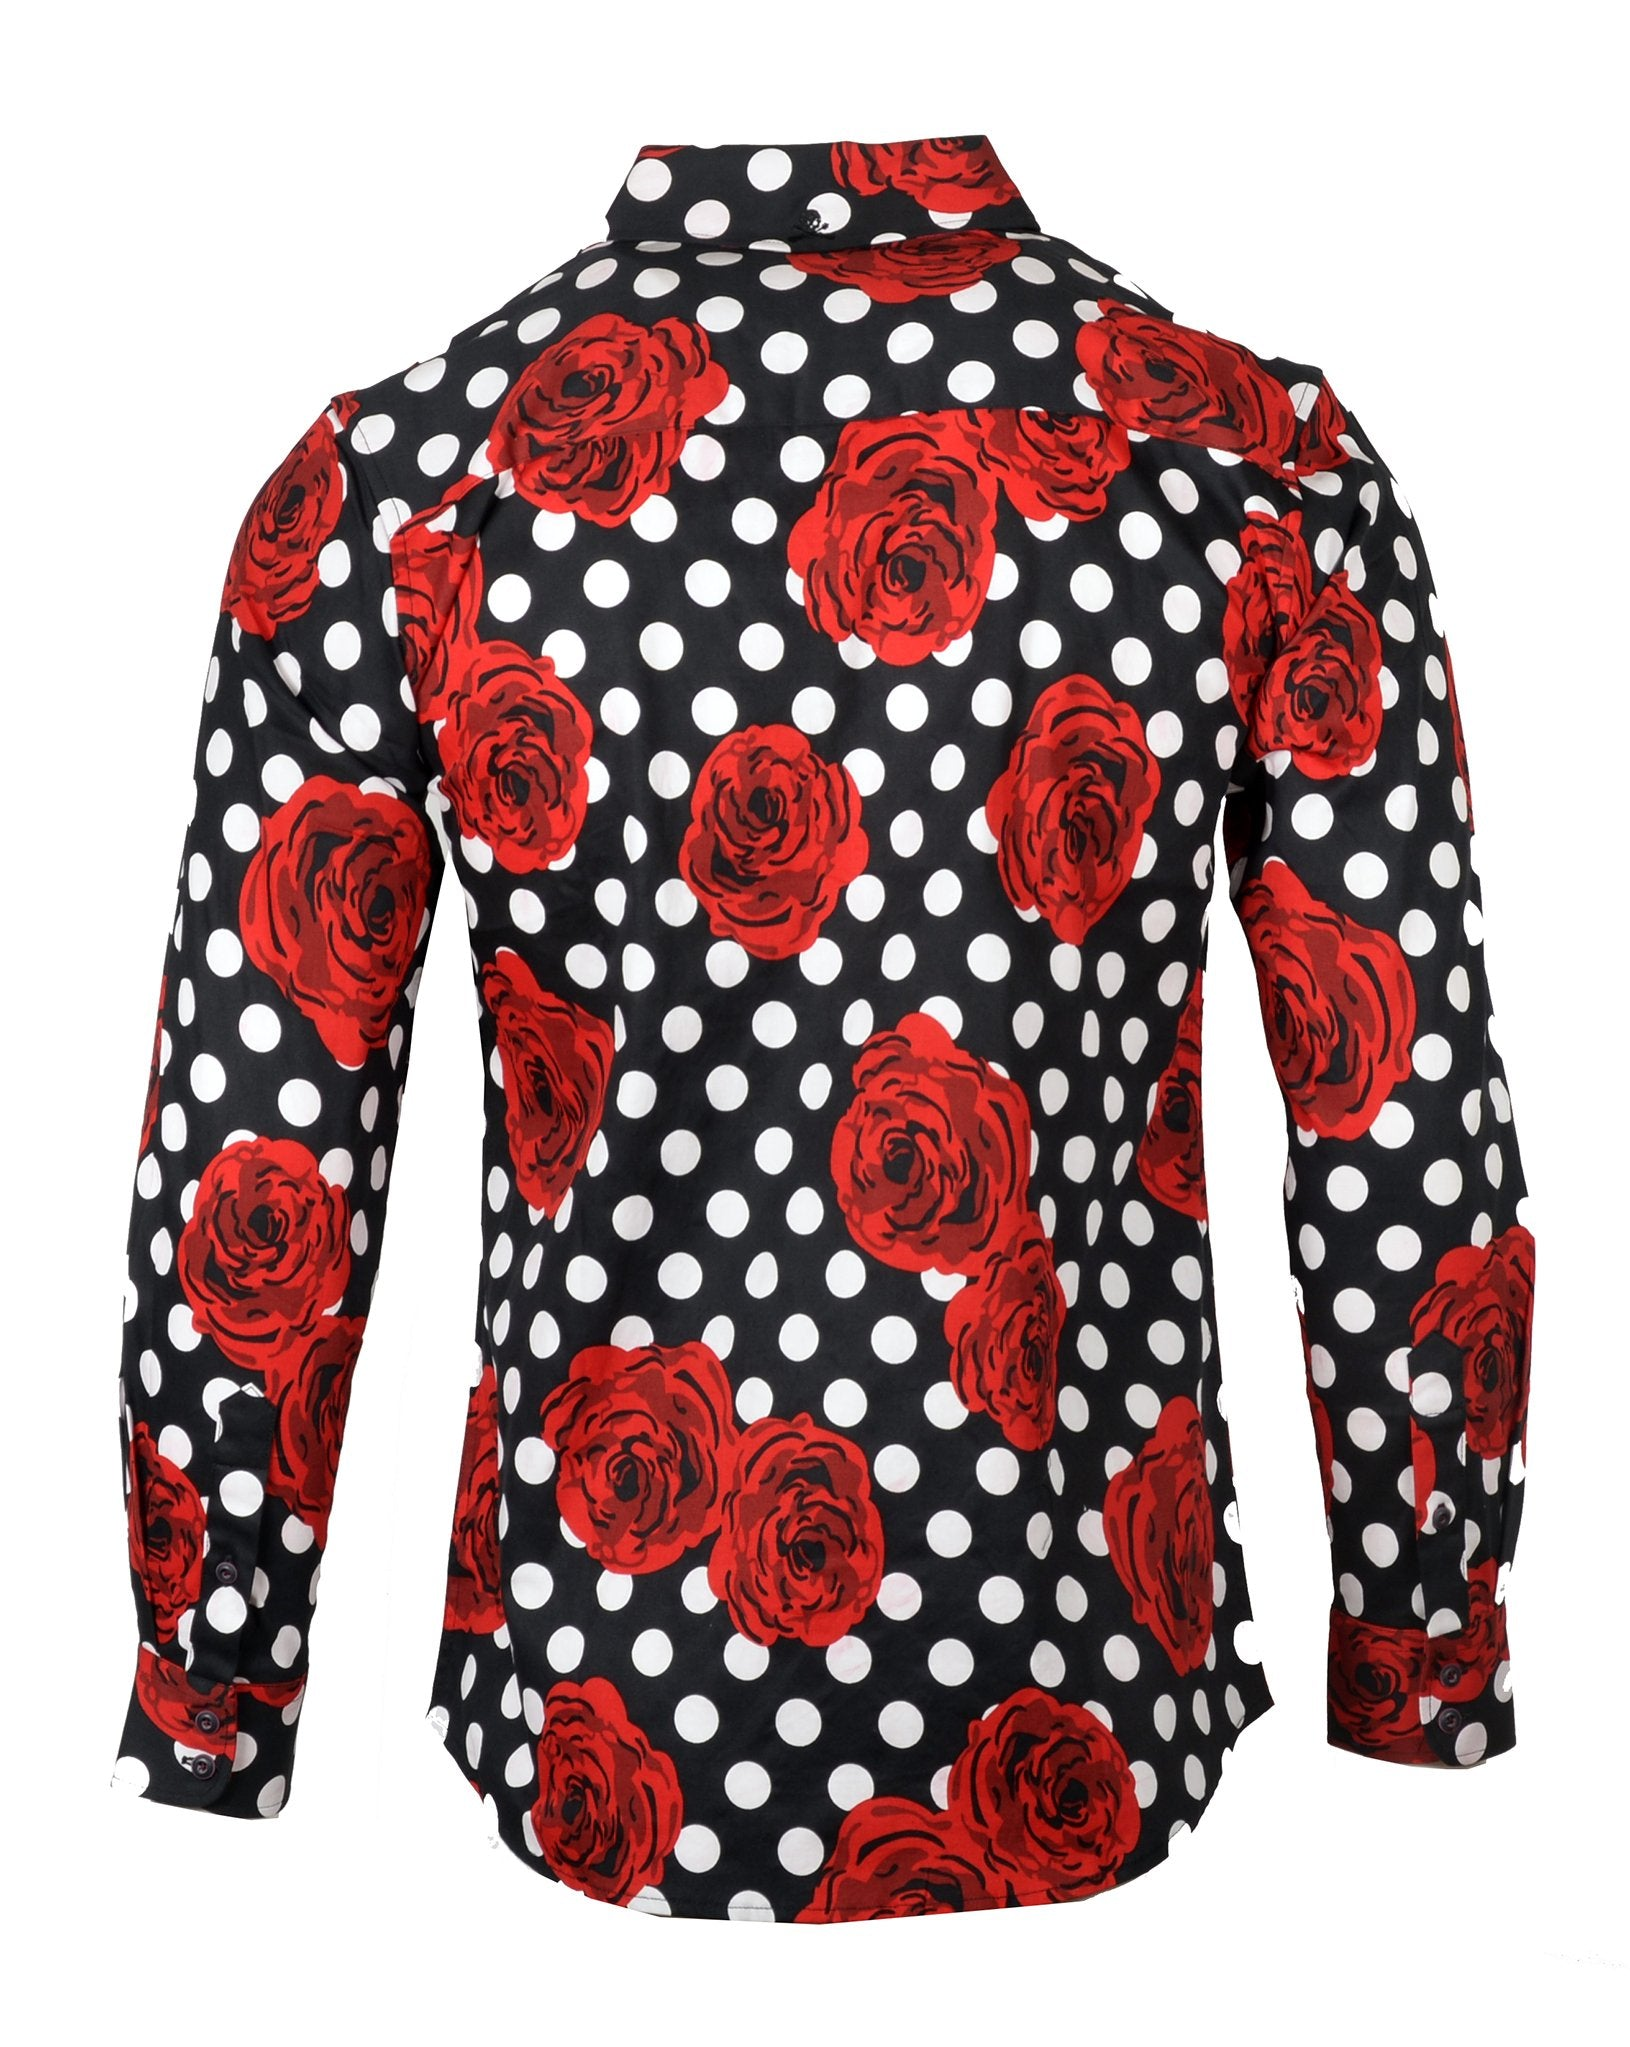 Men's Long Sleeve Casual Floral Fashion Button Up Shirt - Every Rose by Rock Roll n Soul2